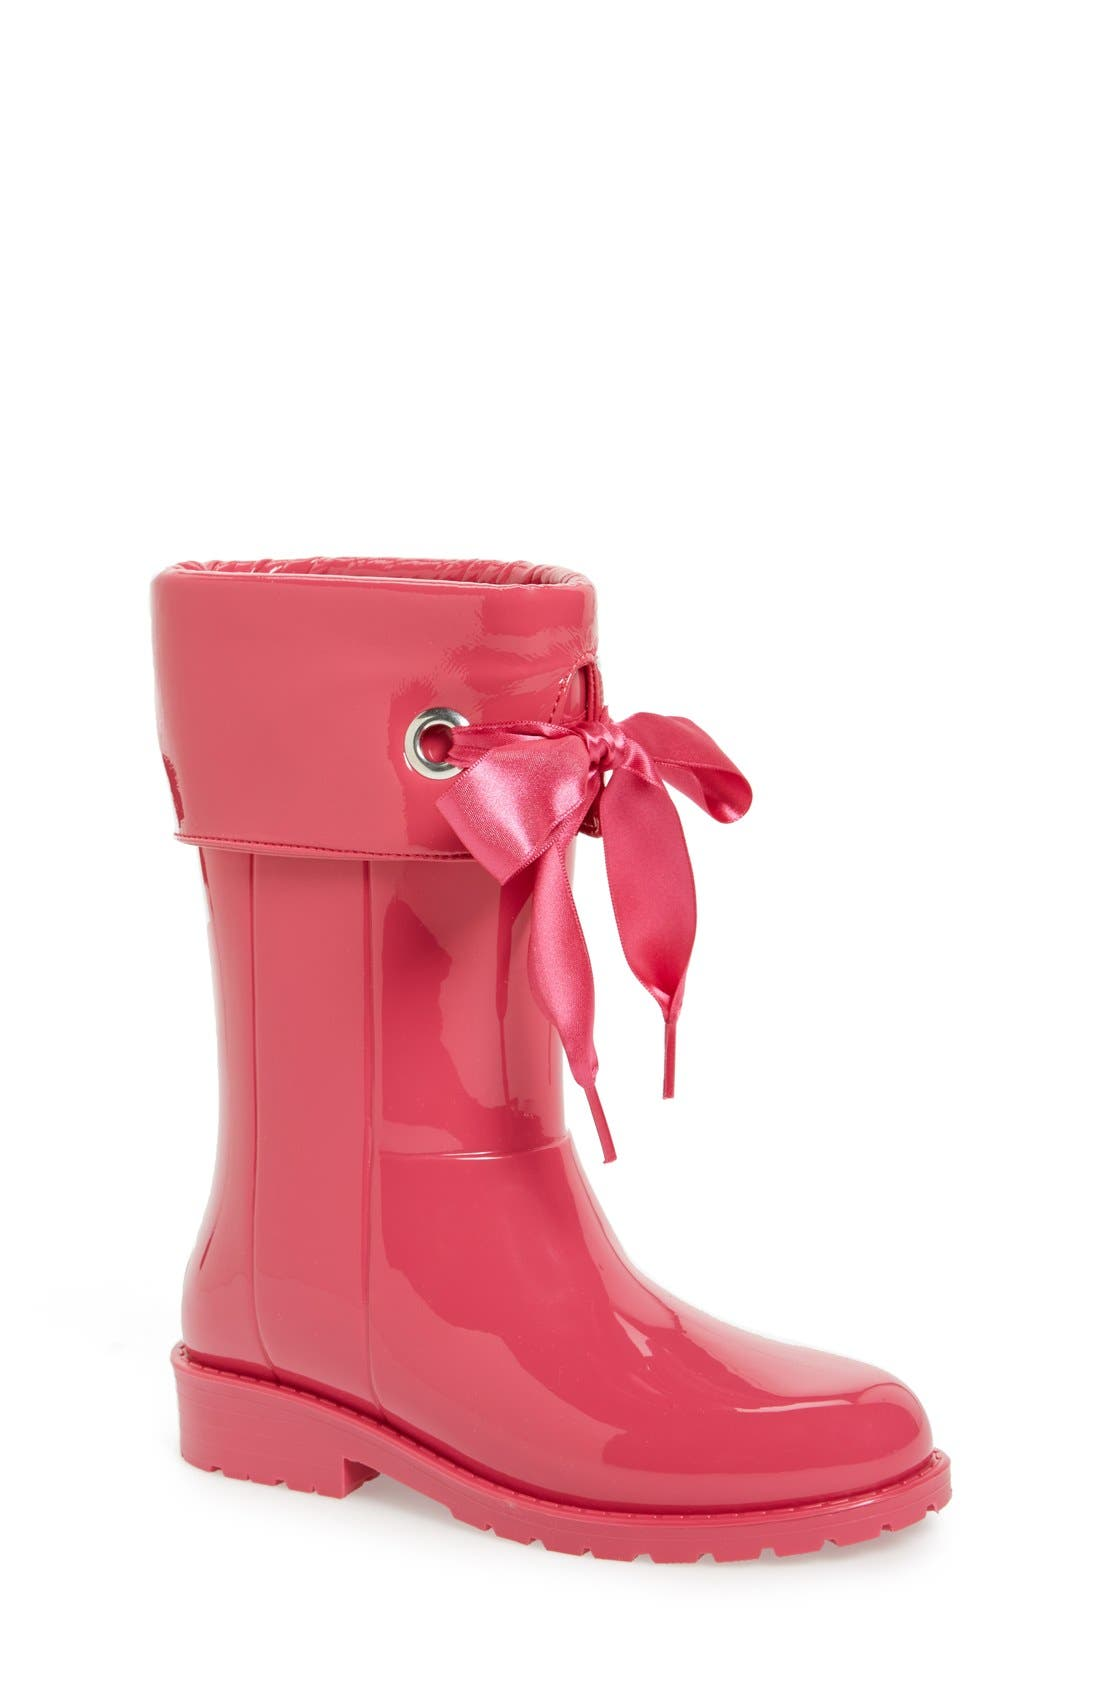 Igor 'Campera Charol' Rain Boot (Toddler, Little Kid & Big Kid)